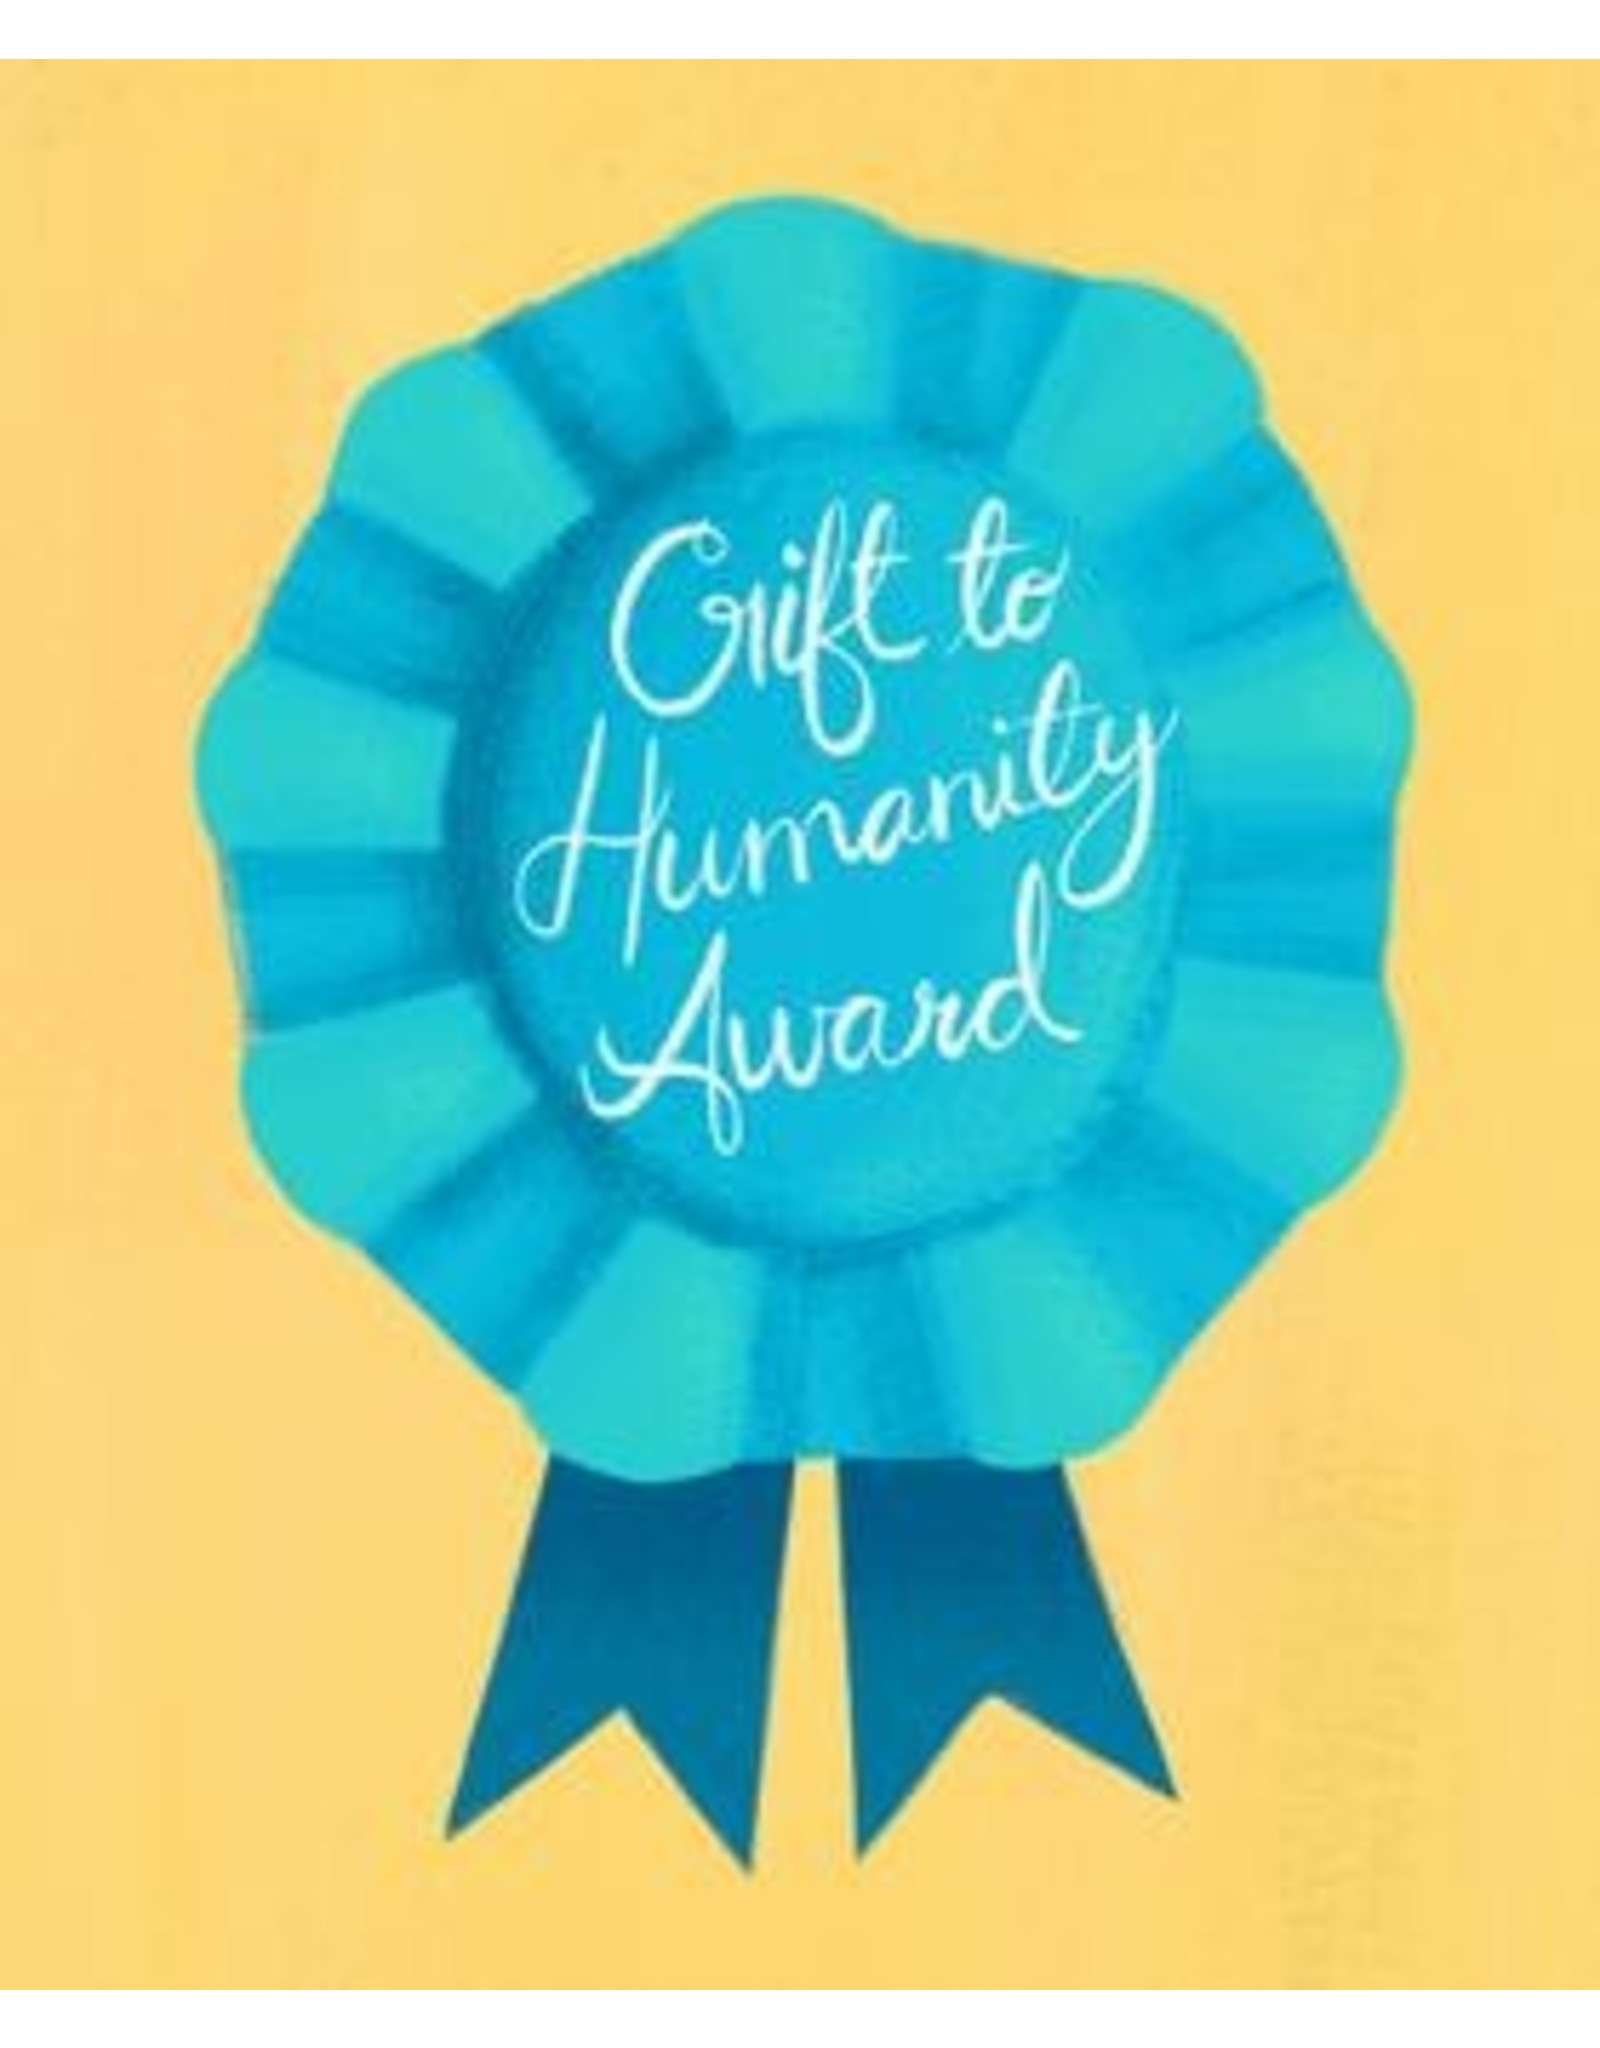 Meaghan Smith - Card/ Gift To Humanity Award